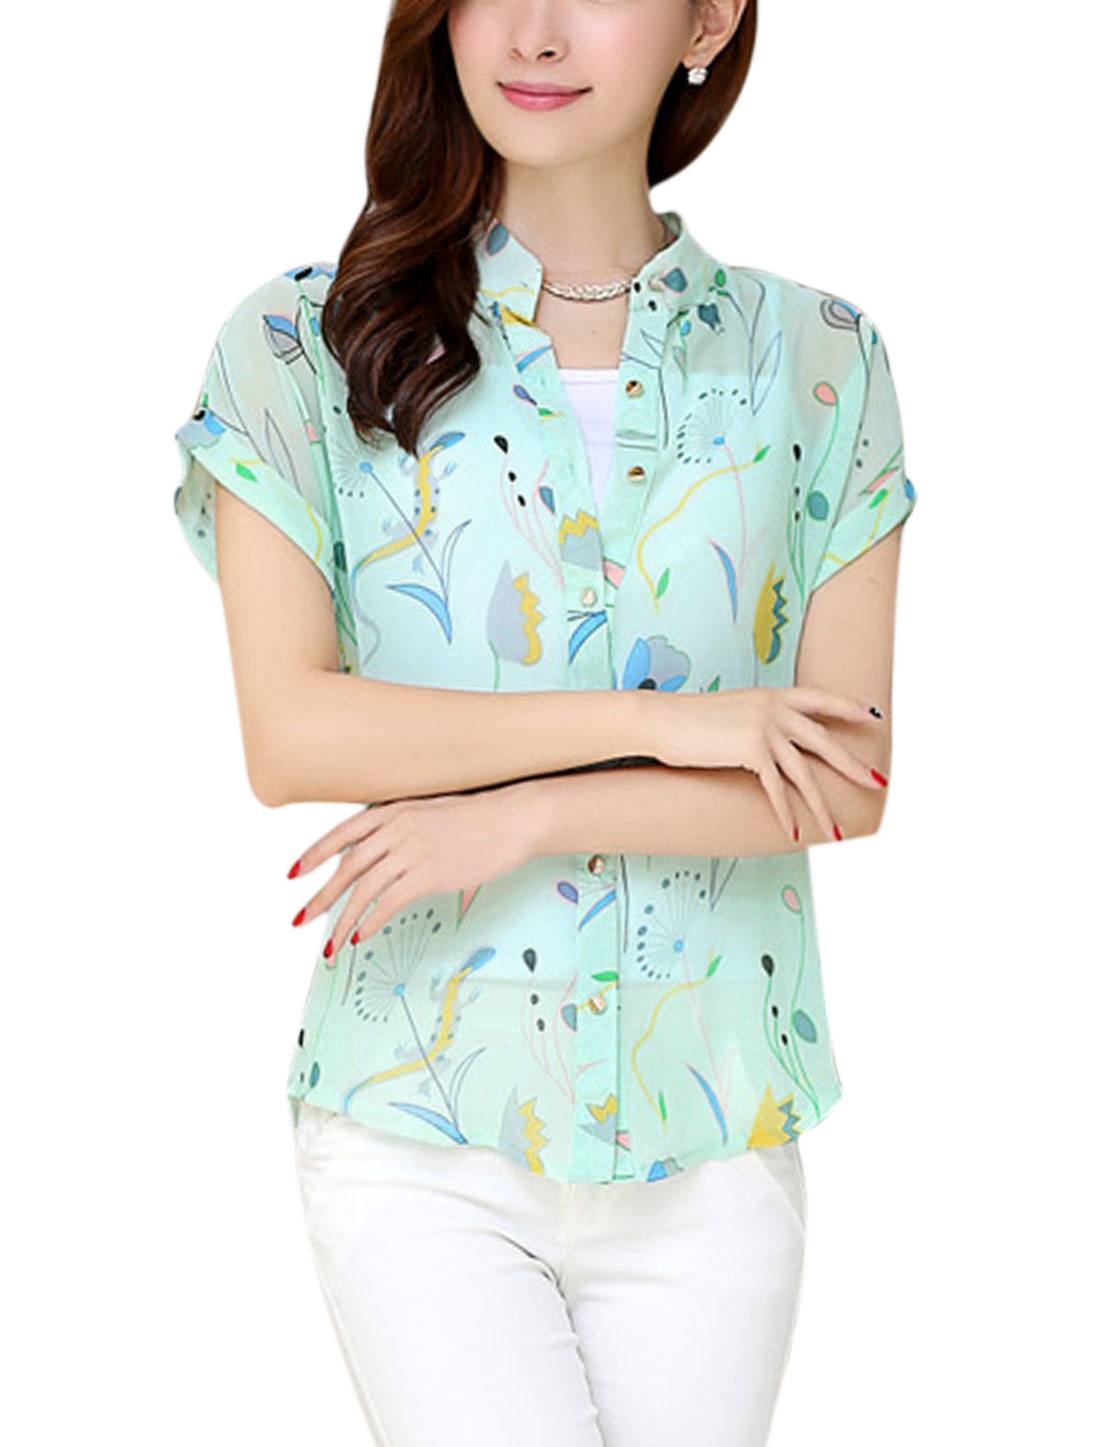 Lady Button Down Floral Prints Mint Shirt w Simple White Cami Top S